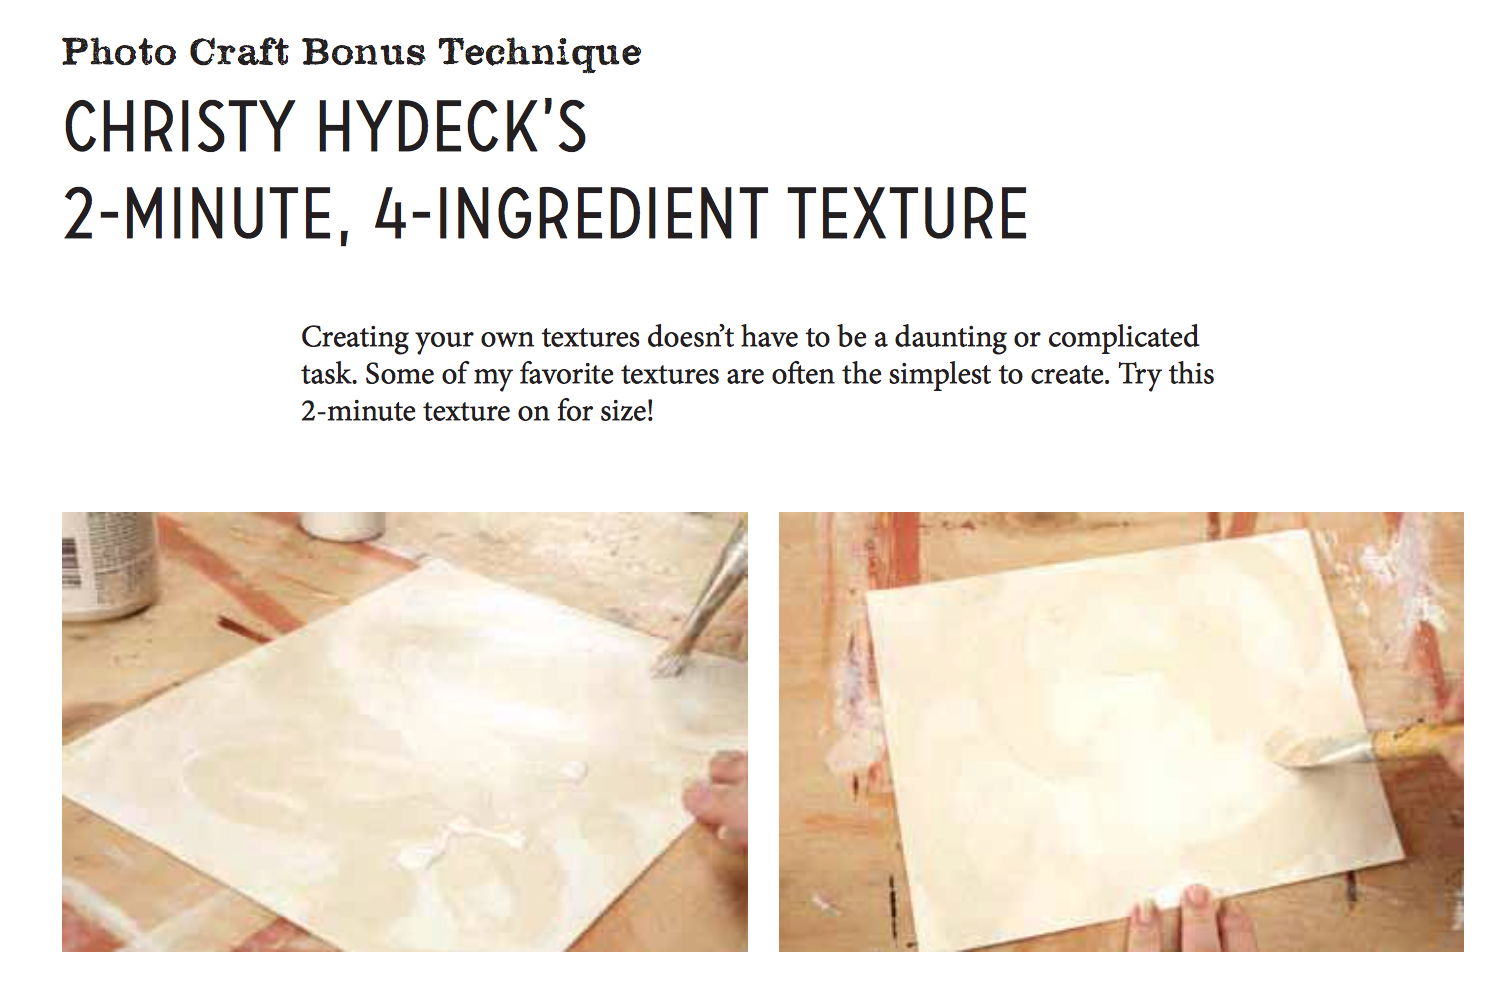 Click the photo to be taken to Photo Craft's Bonus Content + download the PDF!